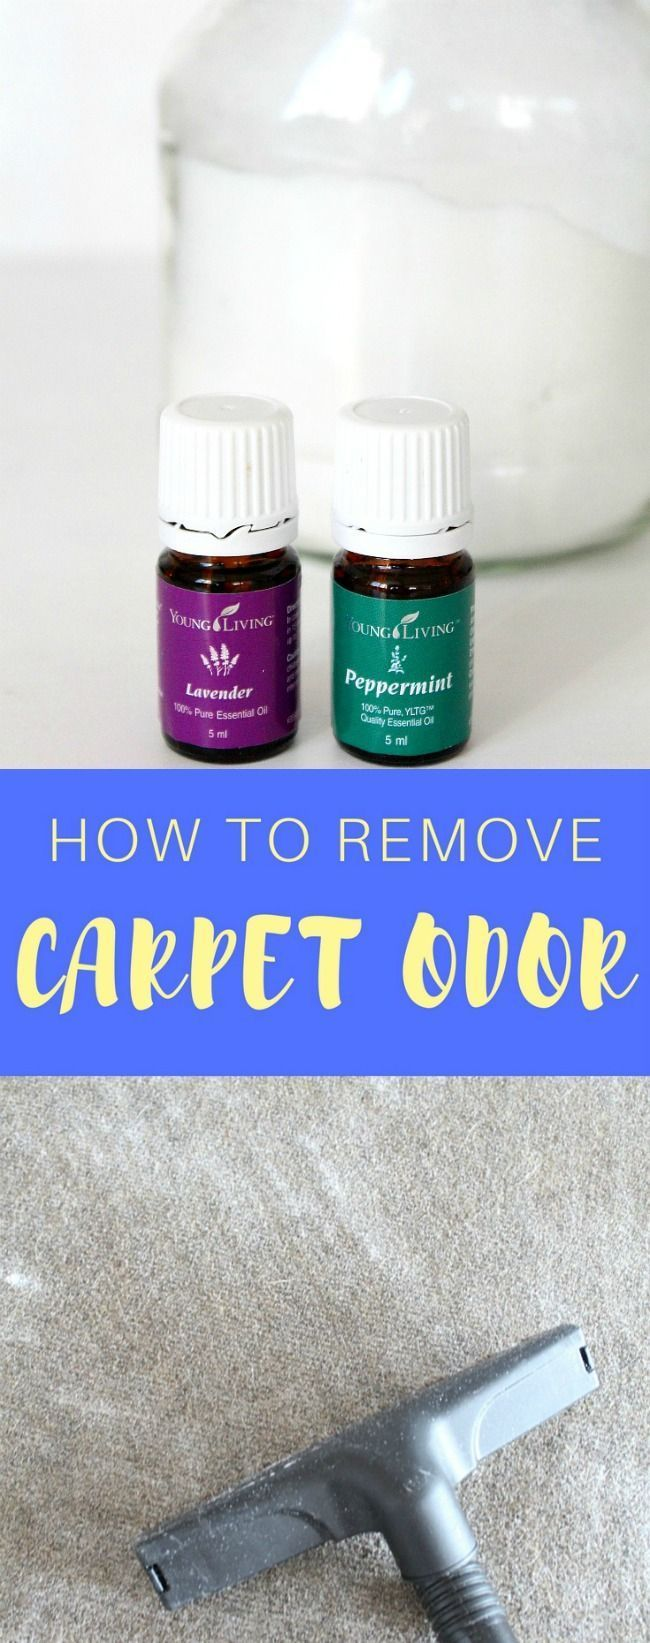 HOW TO REMOVE CARPET ODOR - Are you sick of your carpet odor? Get it to smell fresh and nice again the easy, natural, homemade way. Here's how to remove carpet odor without an expensive deodorizer! #carpetodorremover #DIYcarpetodorremover